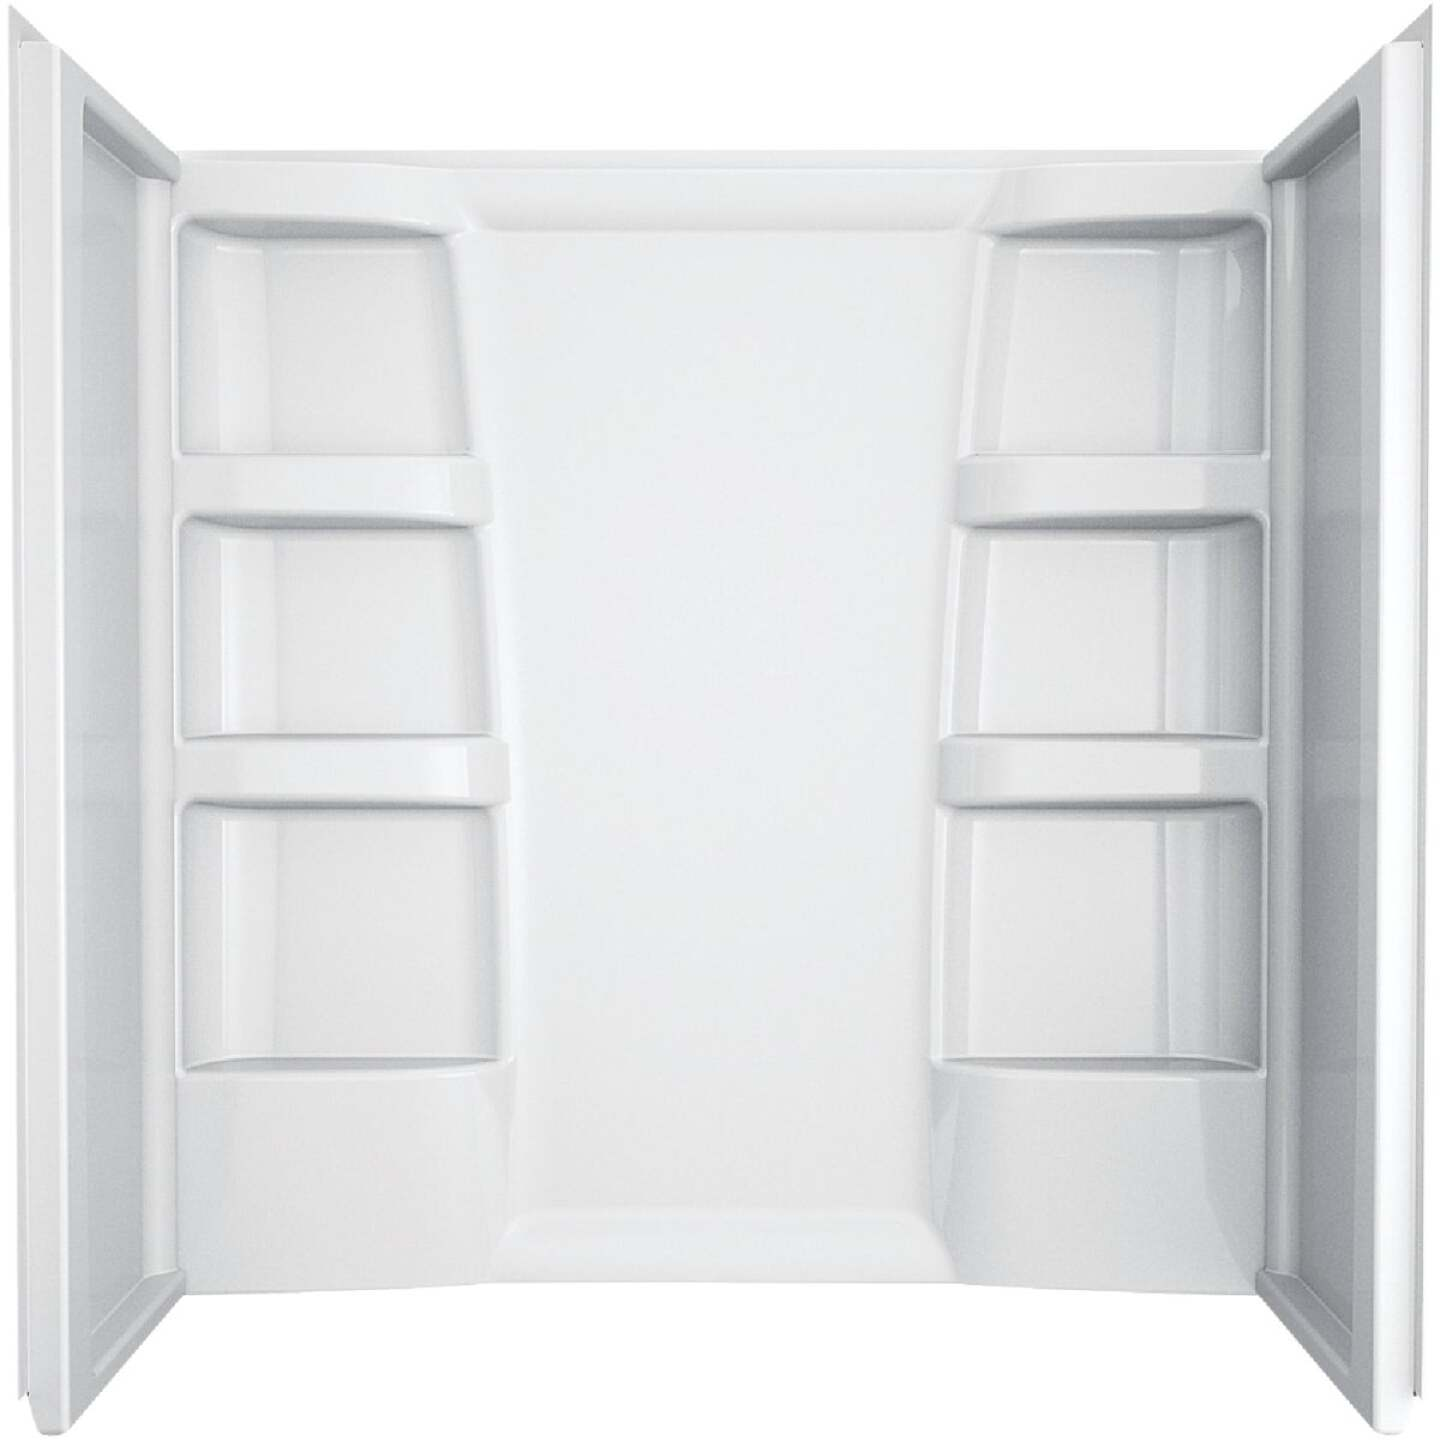 Delta Hycroft 3-Piece 60 In. L x 30 In. D (Bathtub) Tub Wall Kit in White Image 1